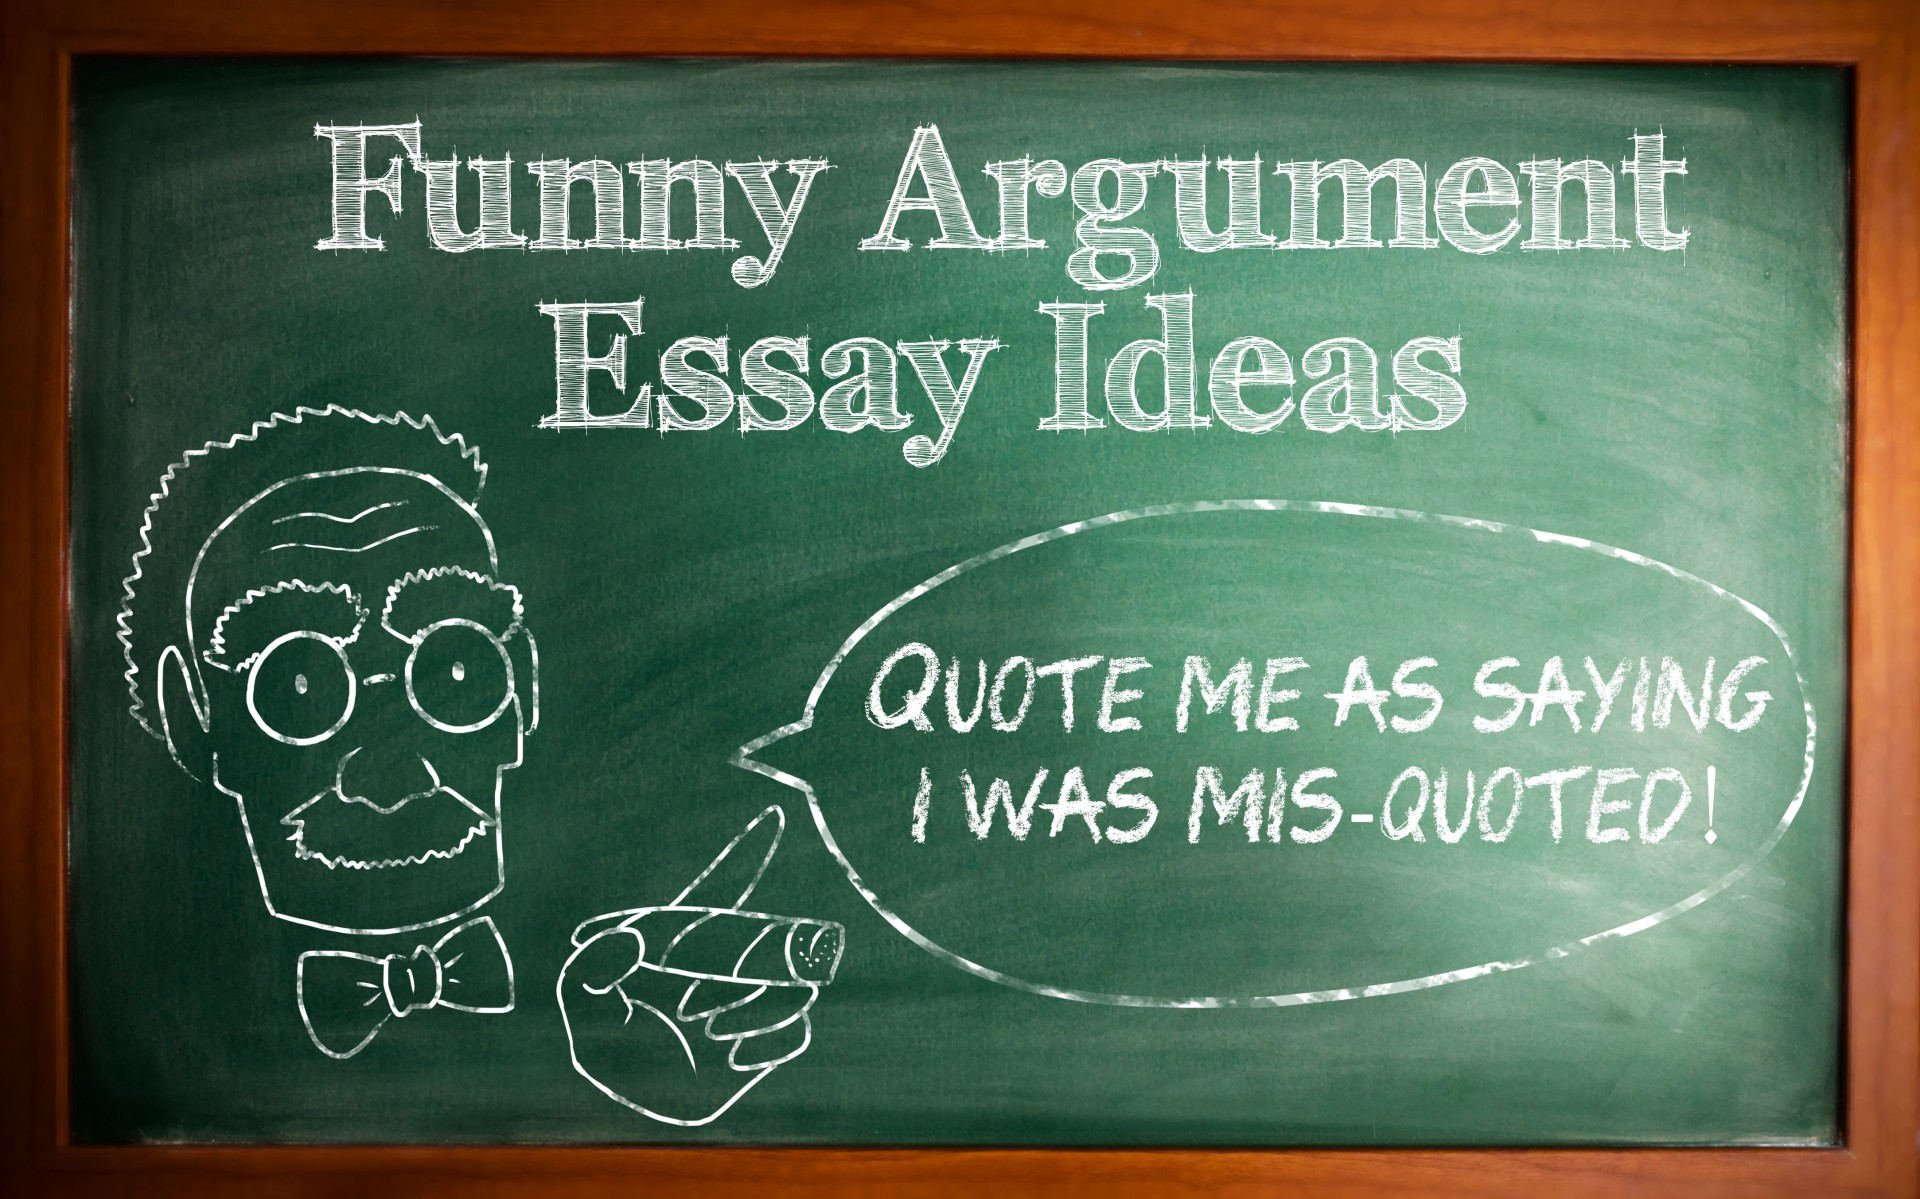 021 Funny Argumentative Essay Topics Marvelous For Middle School 1920